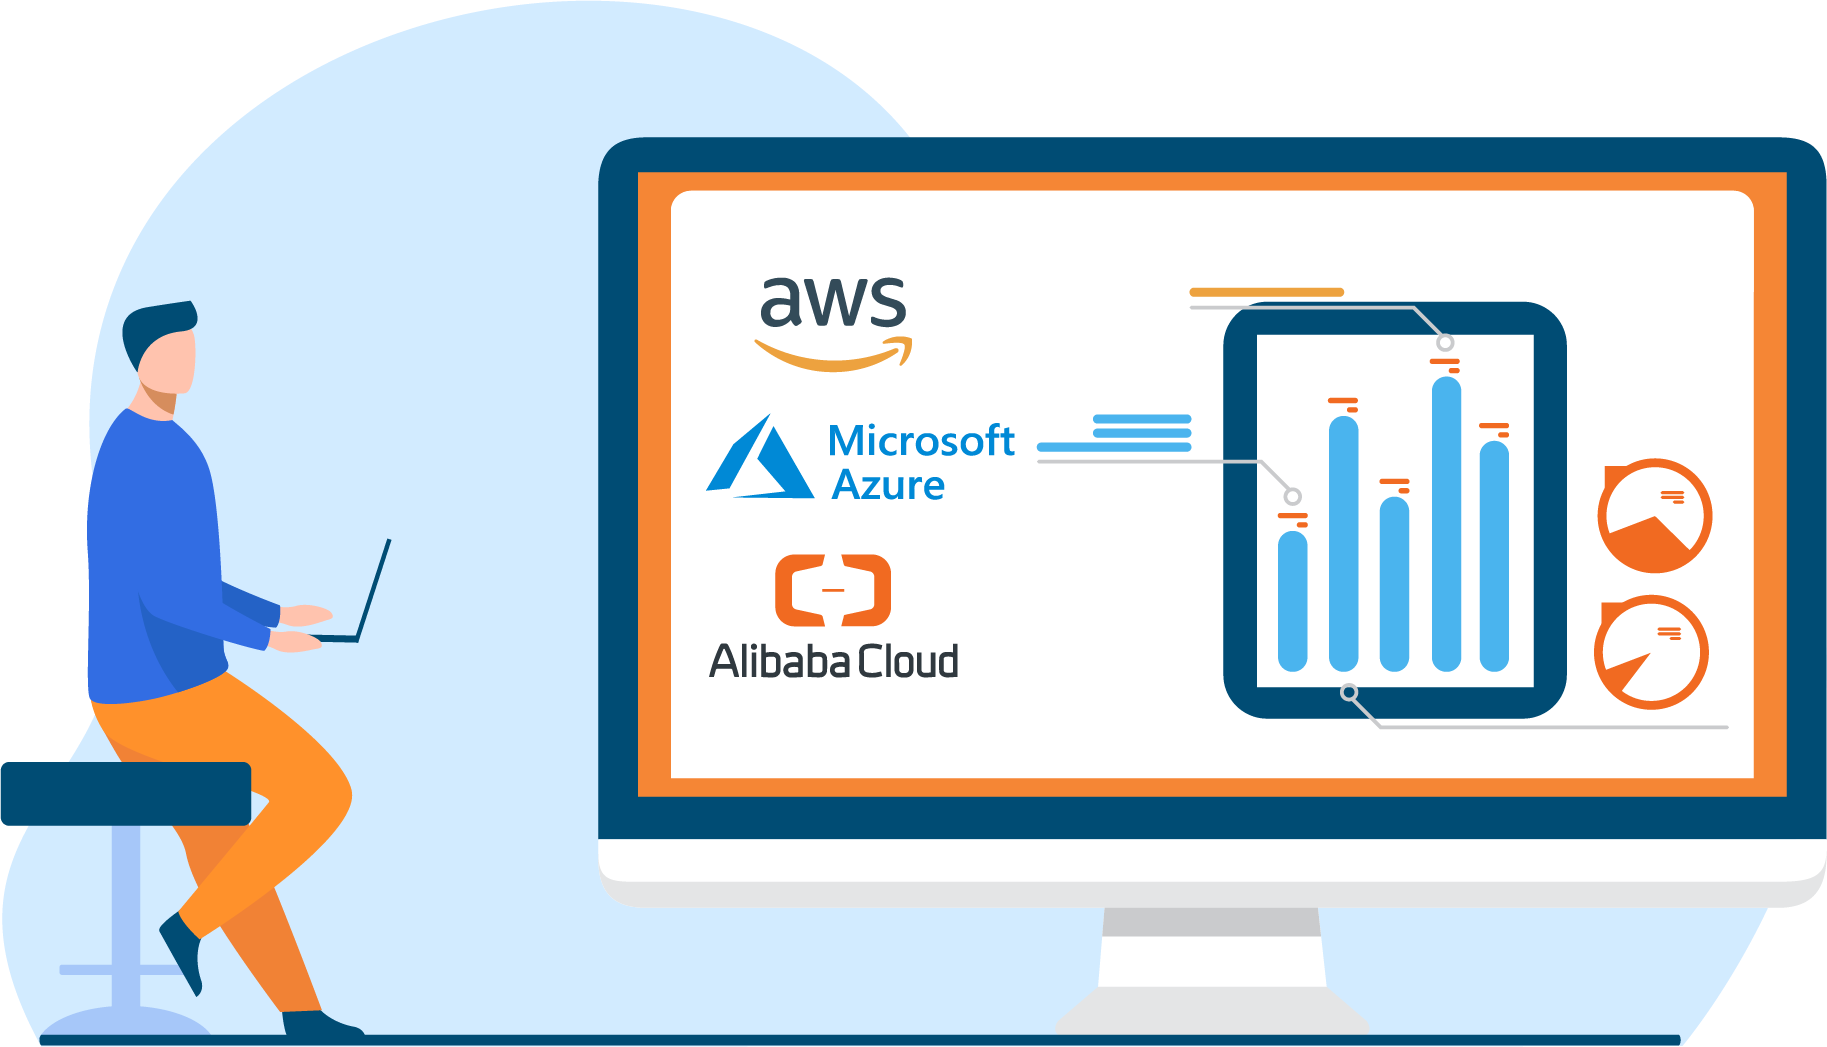 Hystax OptScale full cost transparency for AWS Azure Alibaba cloud environment